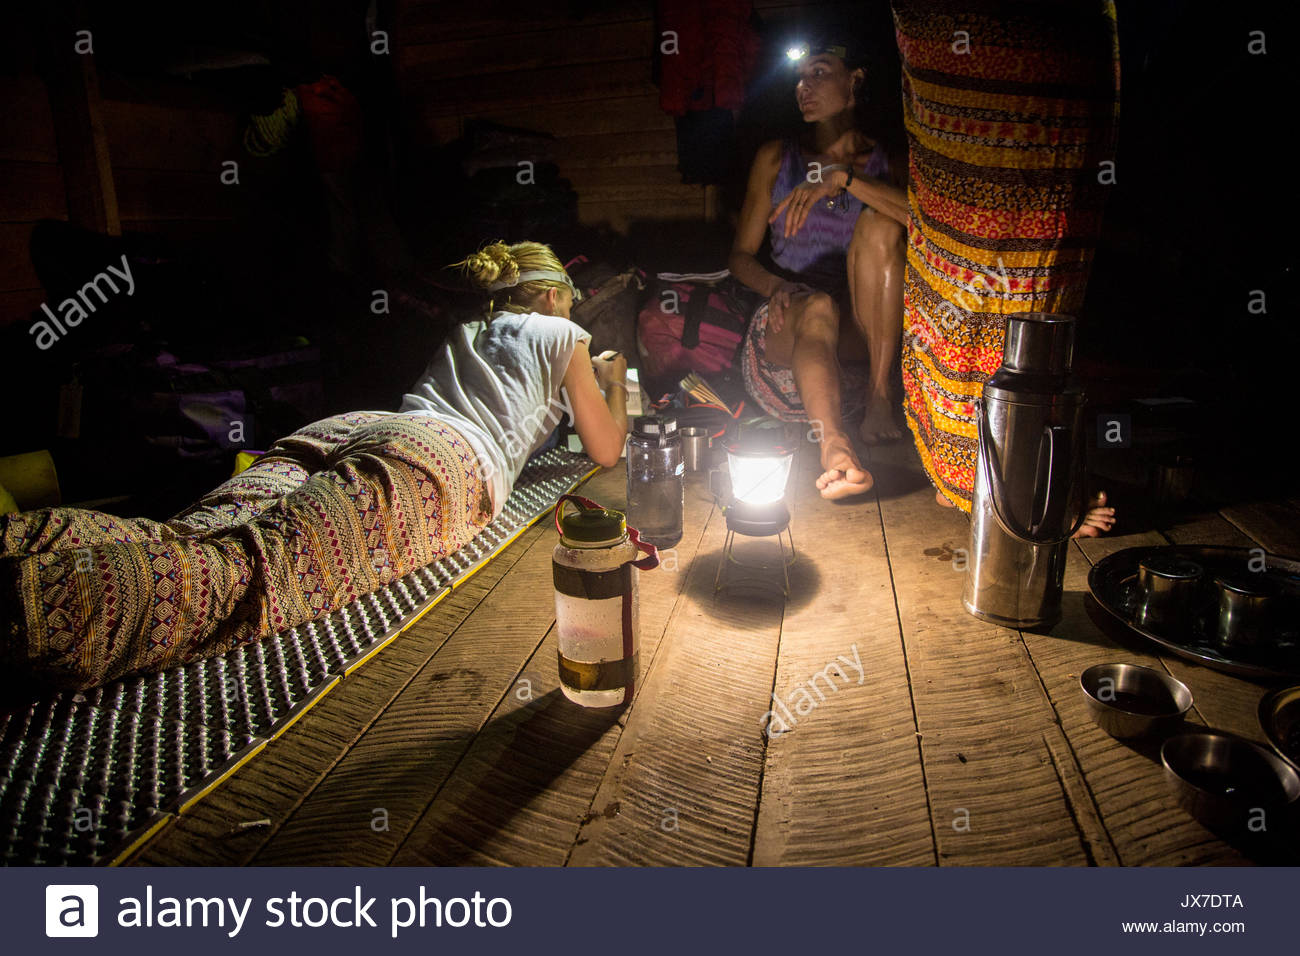 Expedition members resting inside of a wooden building. - Stock Image